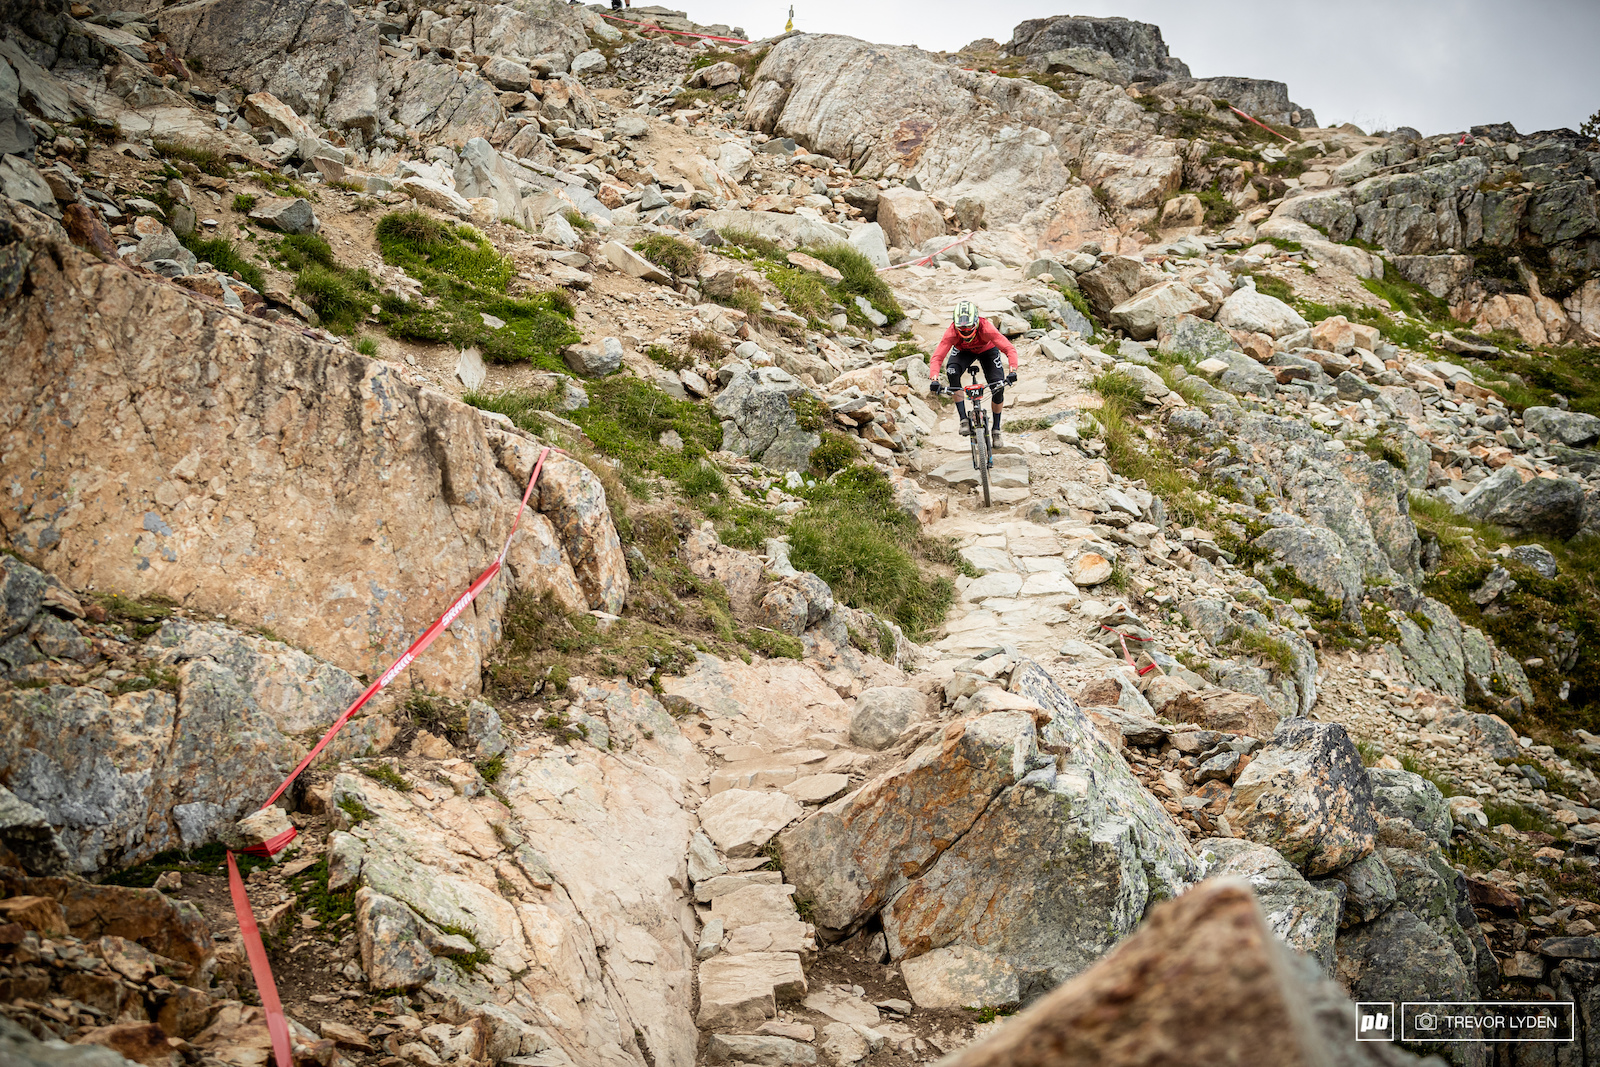 The top of the world trail is as classic high alpine adventure.